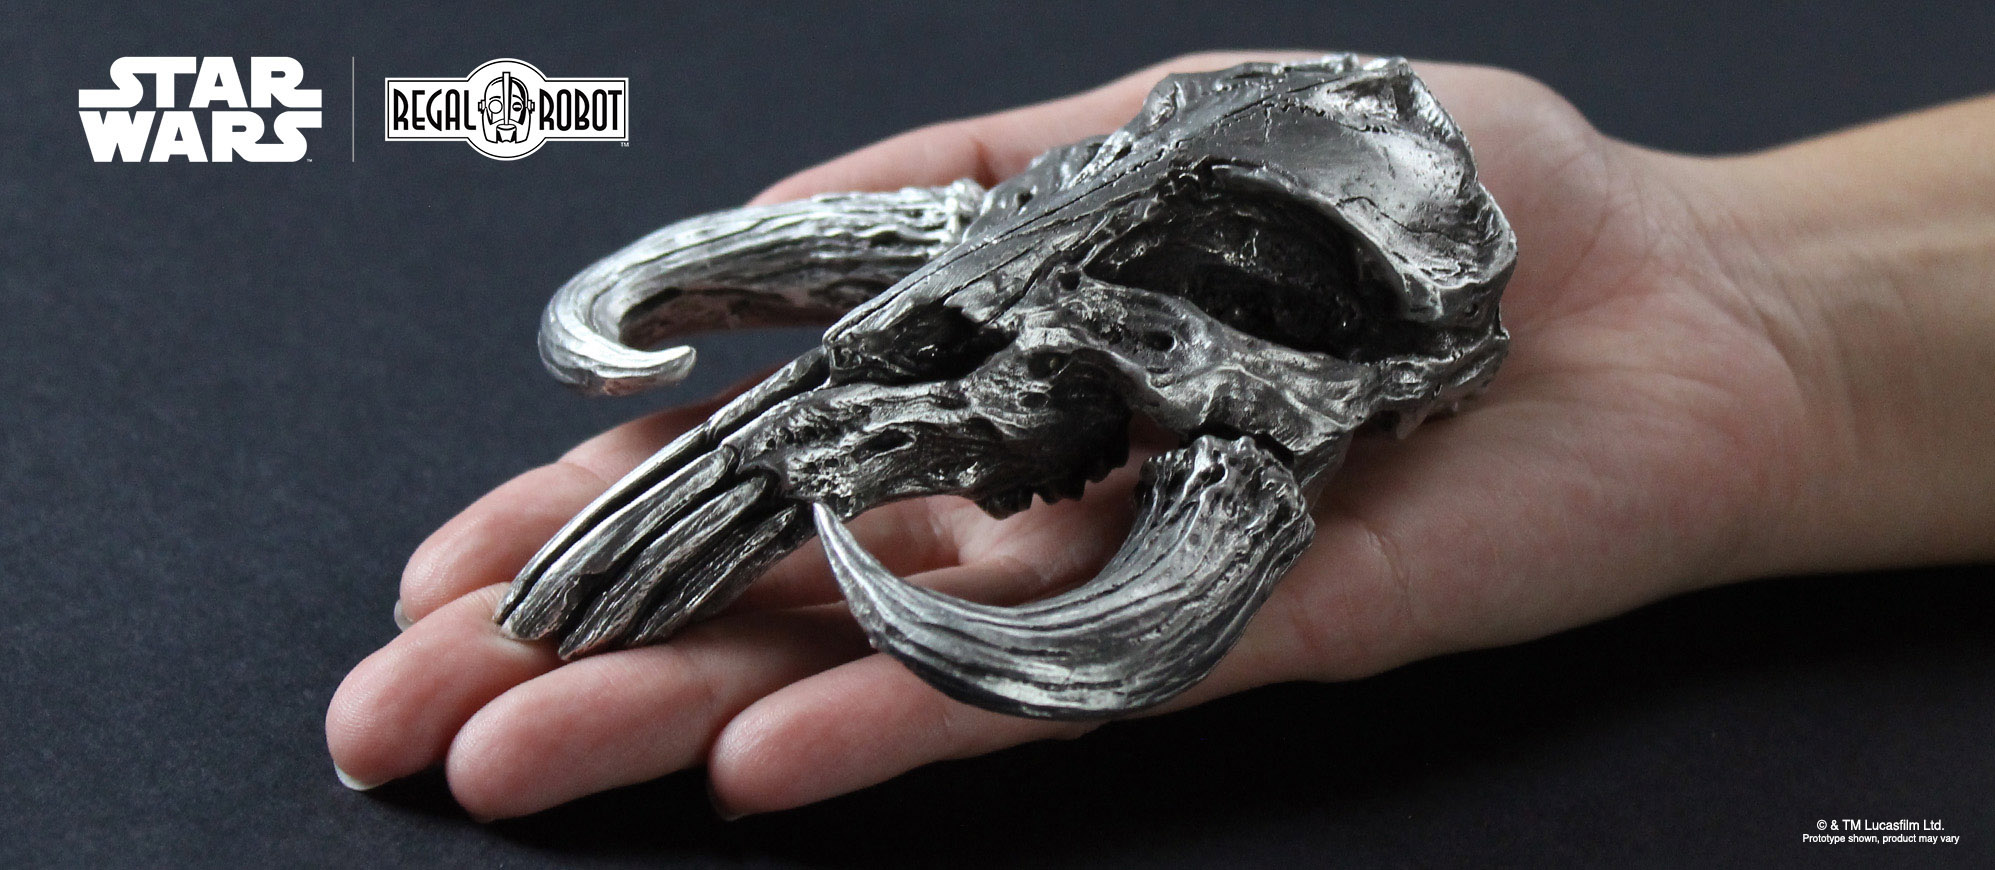 Pewter mythosaur skull or bantha skull sculpture in pewter